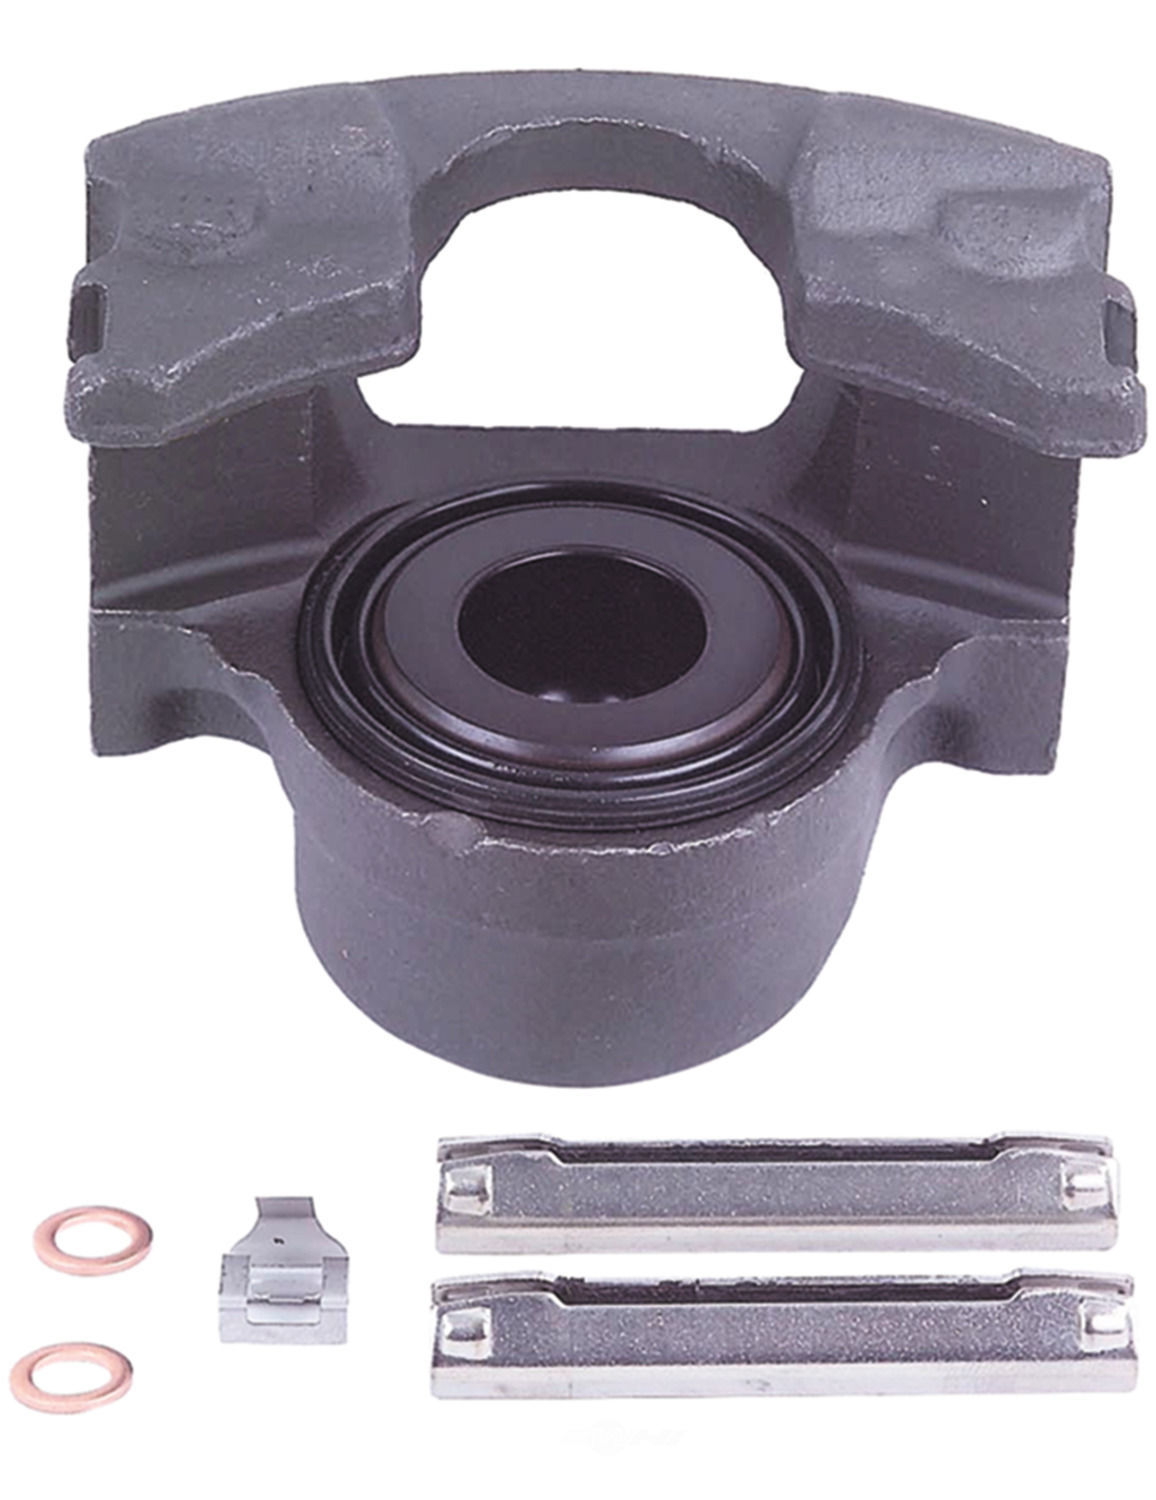 CARDONE/A-1 CARDONE - Remanufactured Friction Choice Caliper (Front Right) - A1C 18-4196